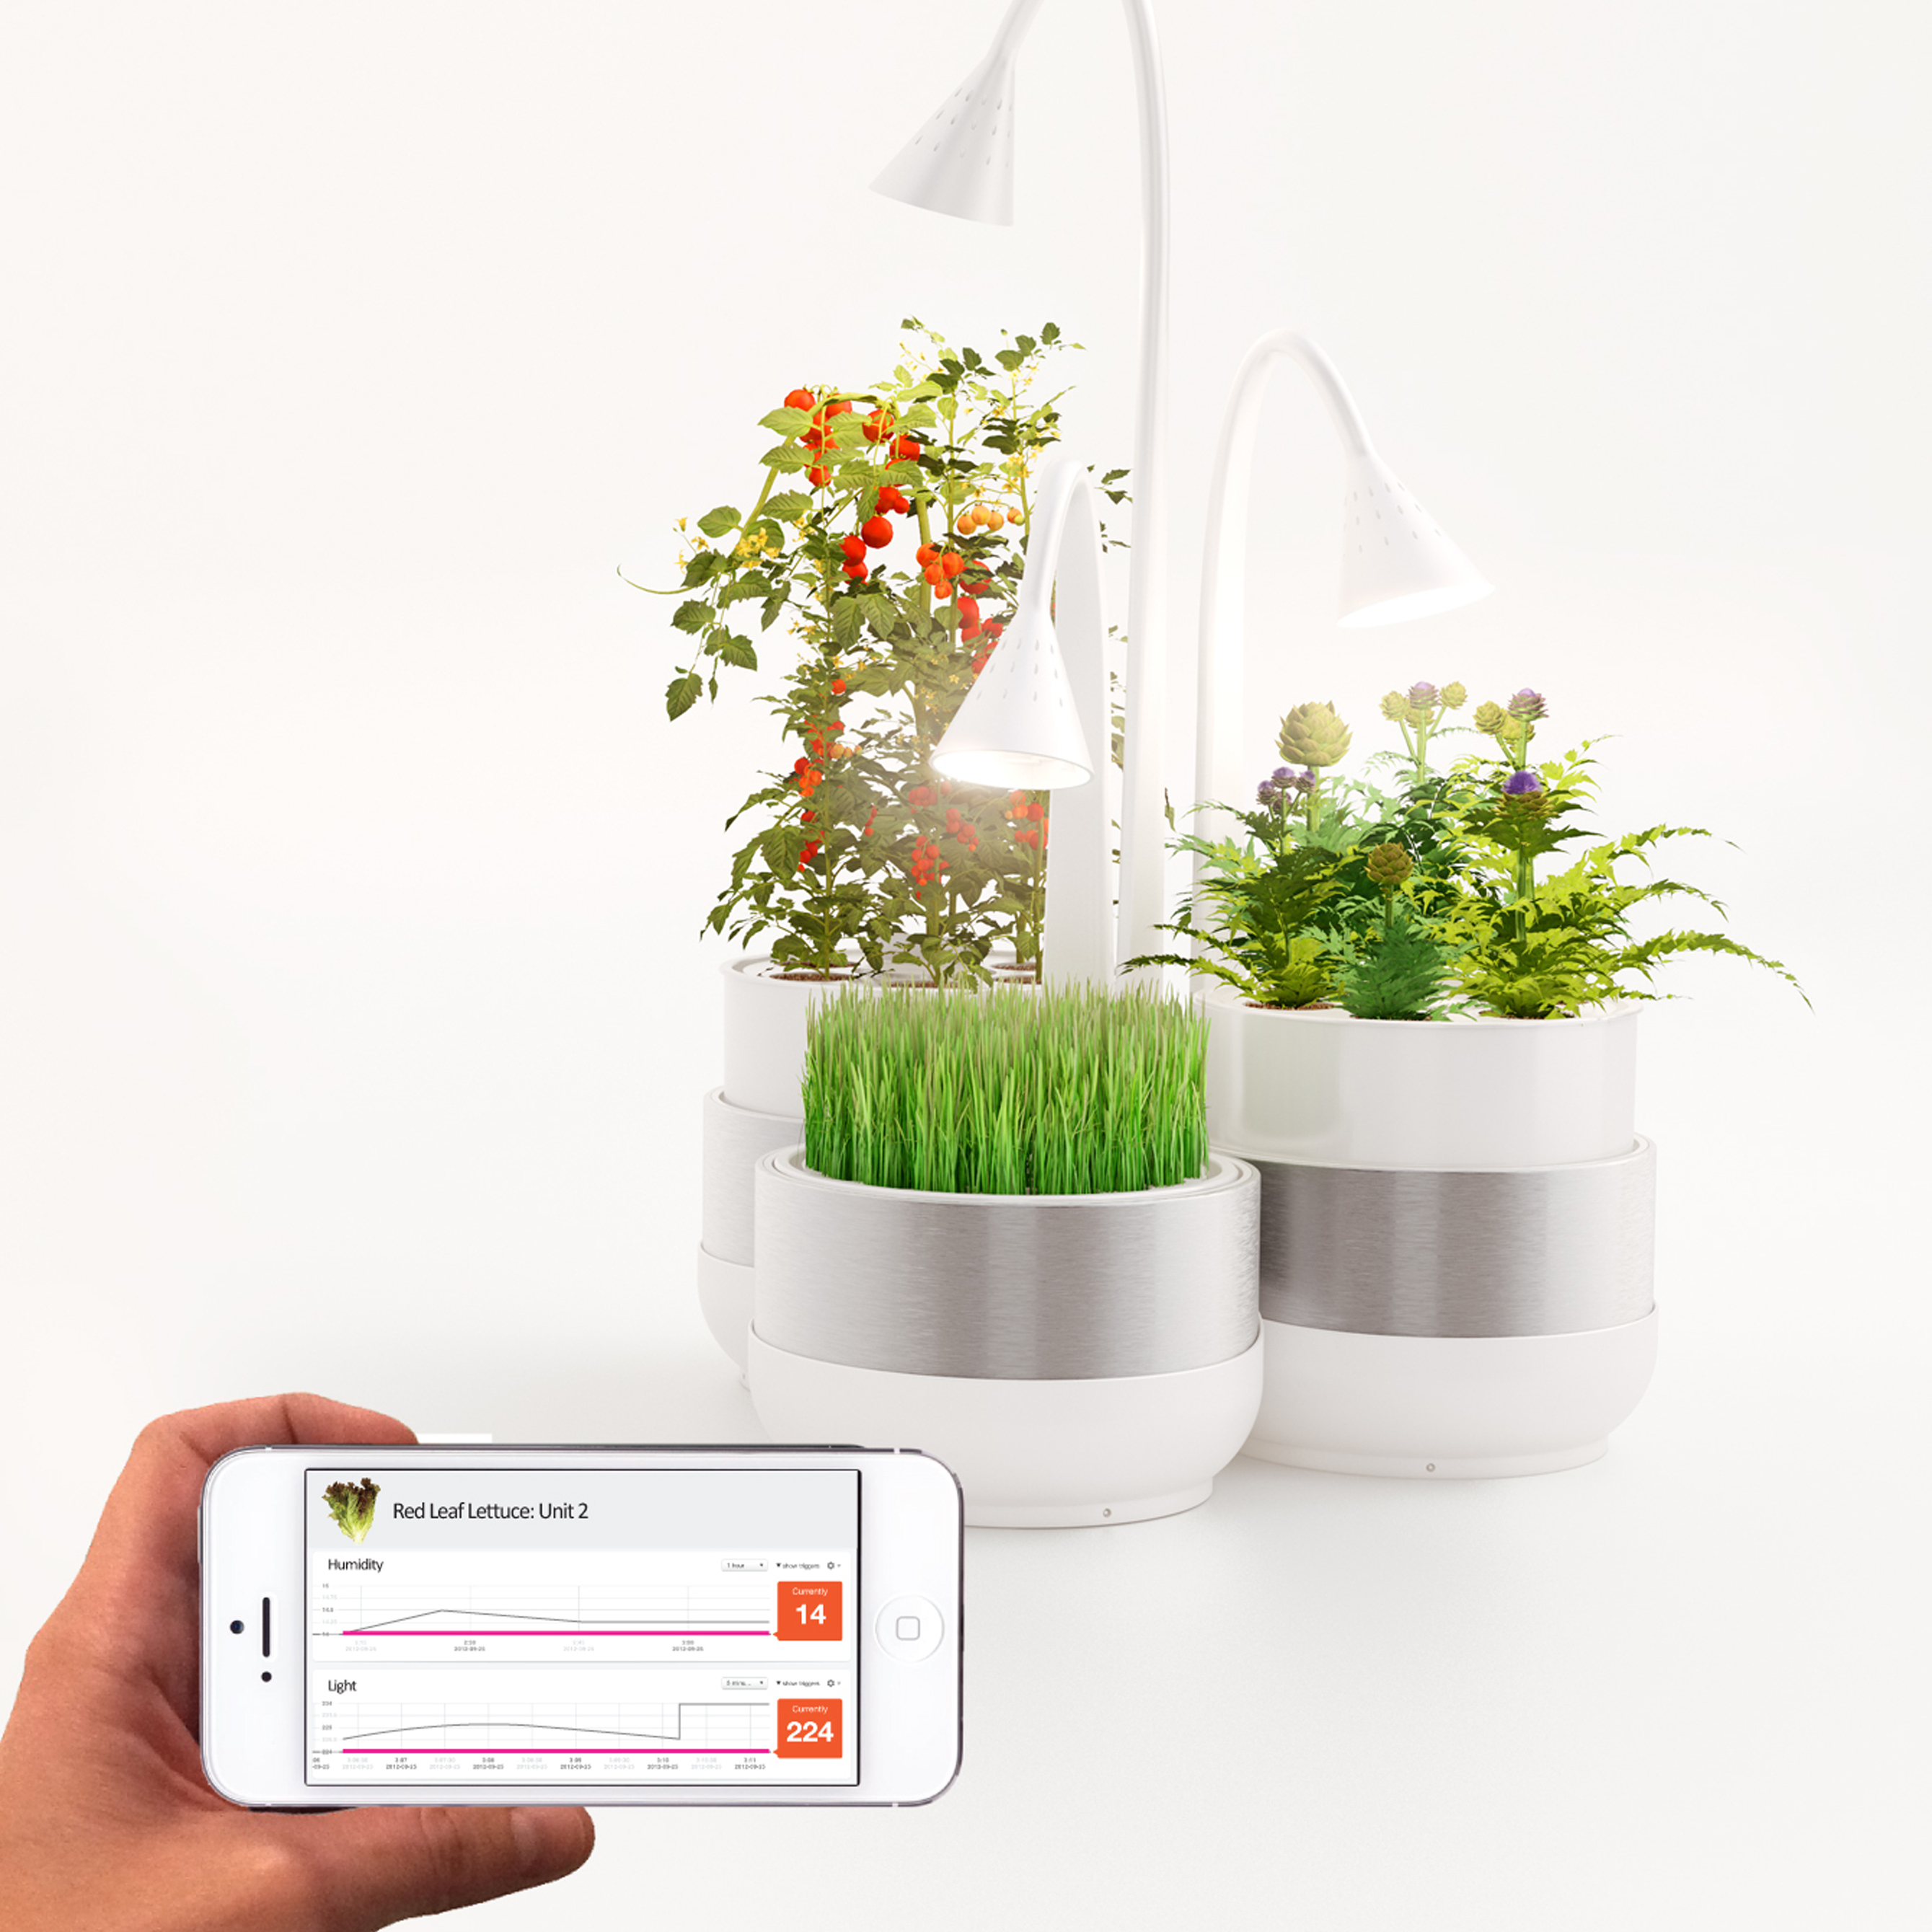 You can view and modify your plant's profile on the SproutsIO phone app.